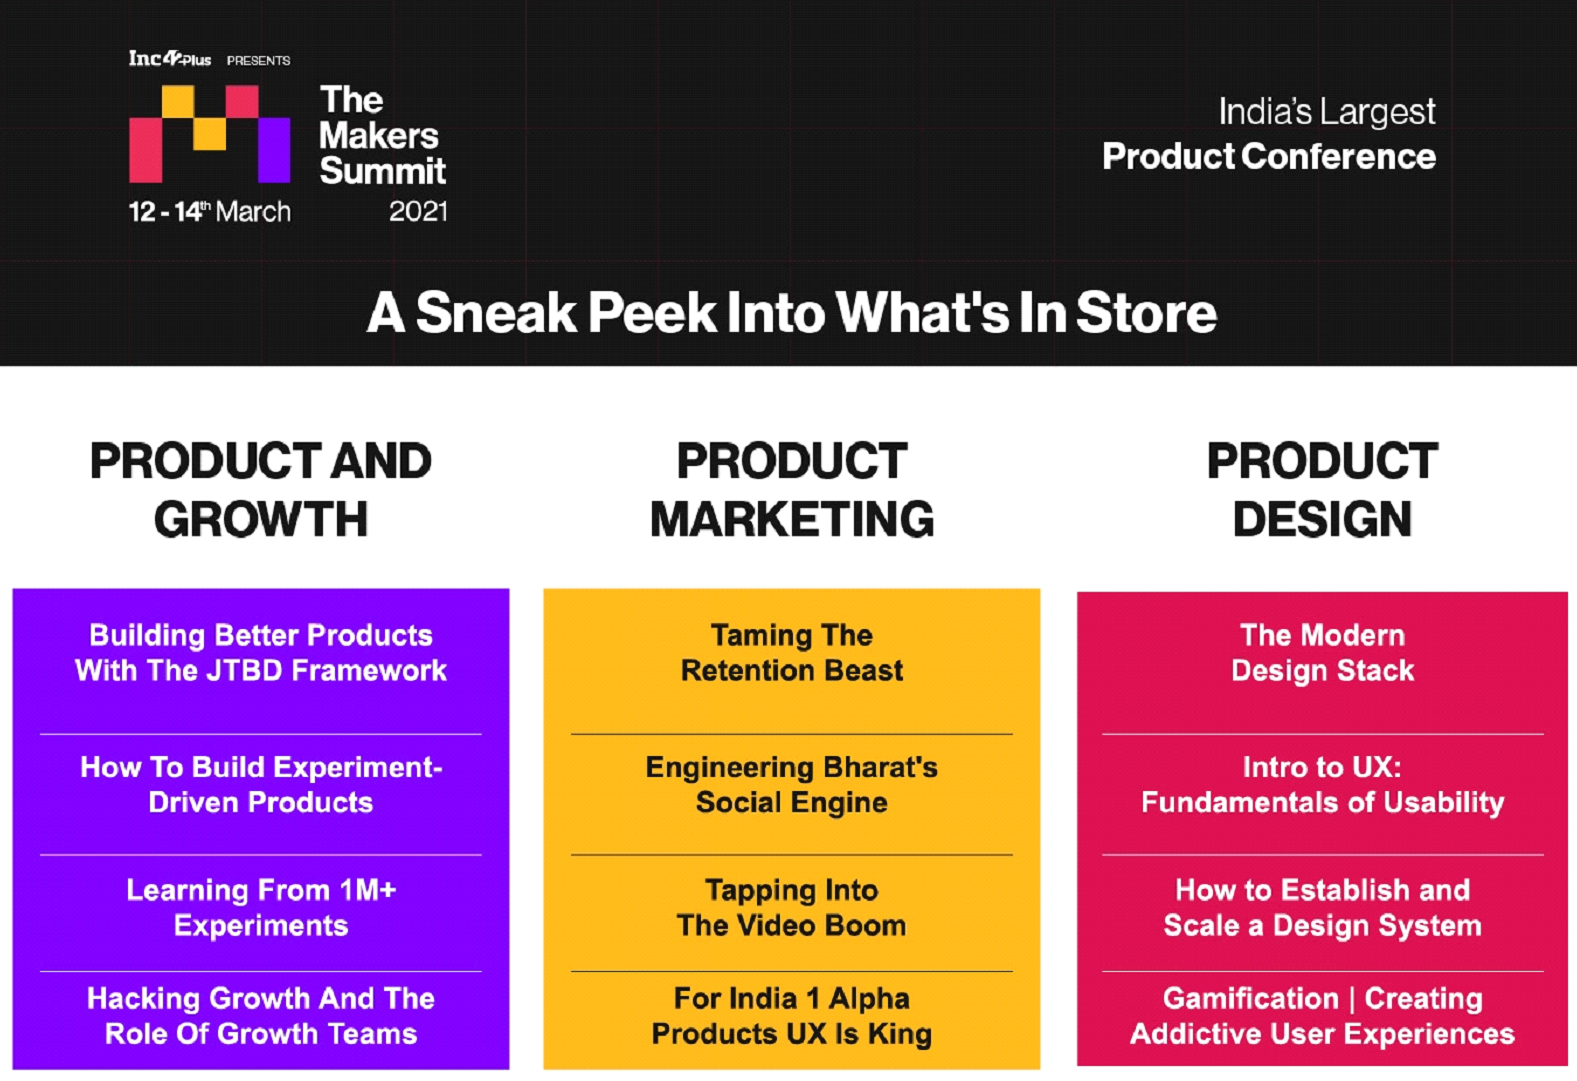 The-Makers-Summit-2021-India's-Largest-Virtual-Conference-For-Product-Marketing-And-Design